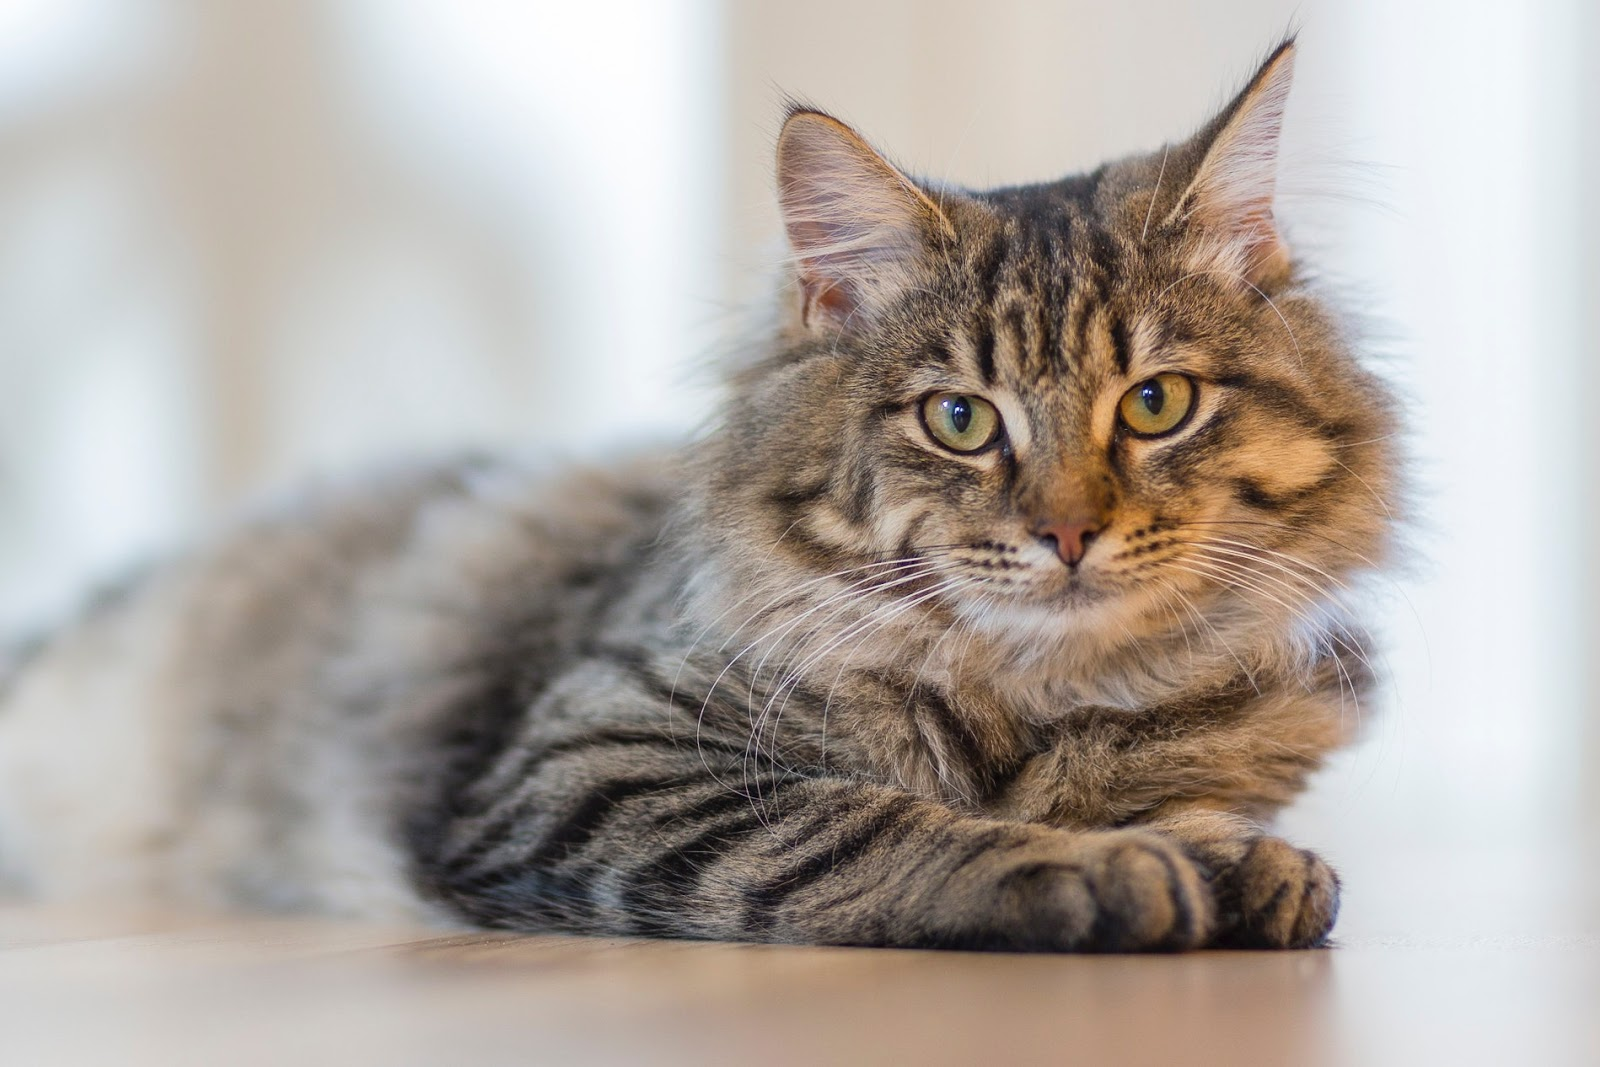 Gray tabby cat lying on white surface,cat images